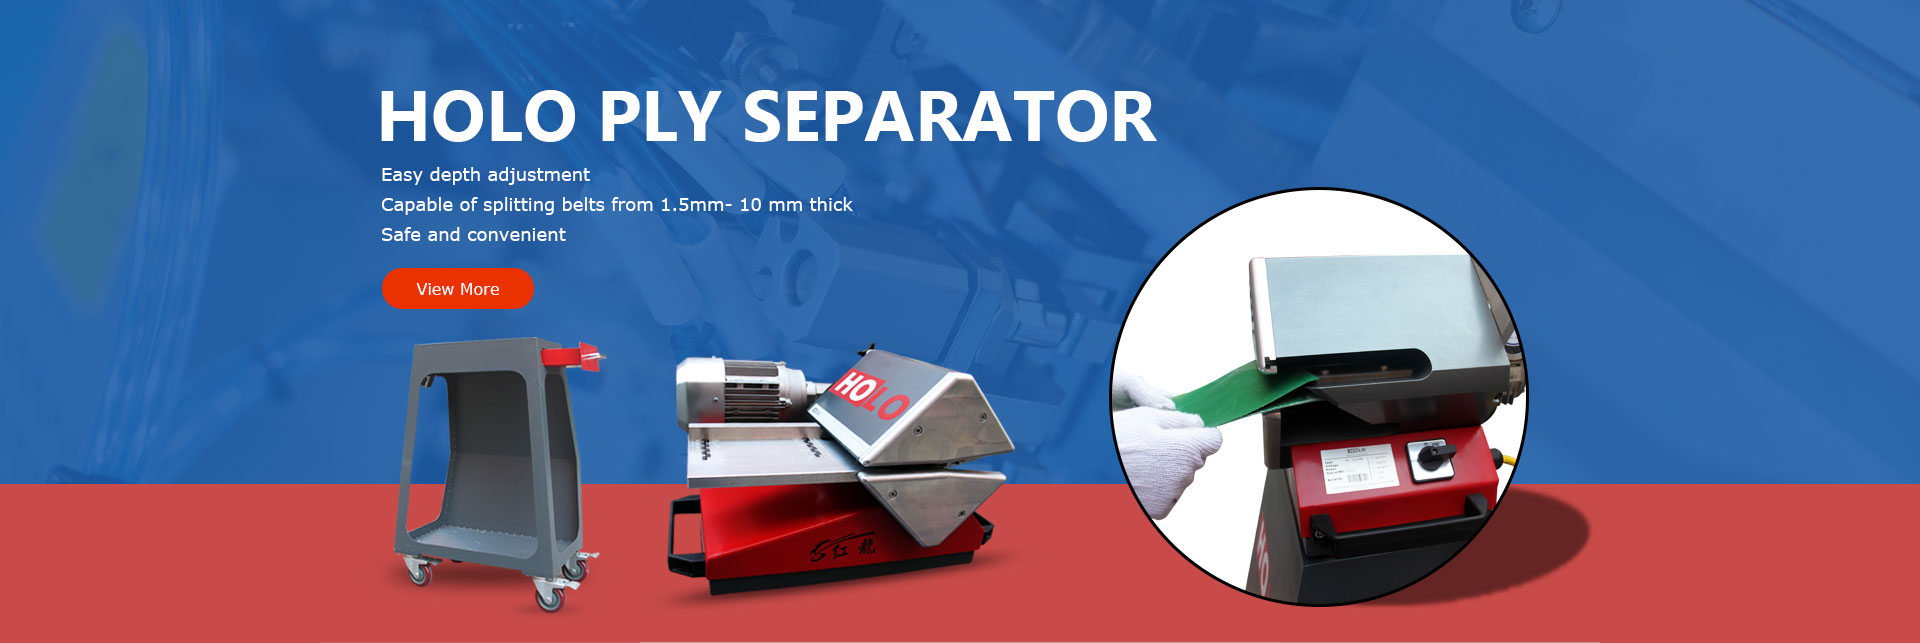 Ply Separator